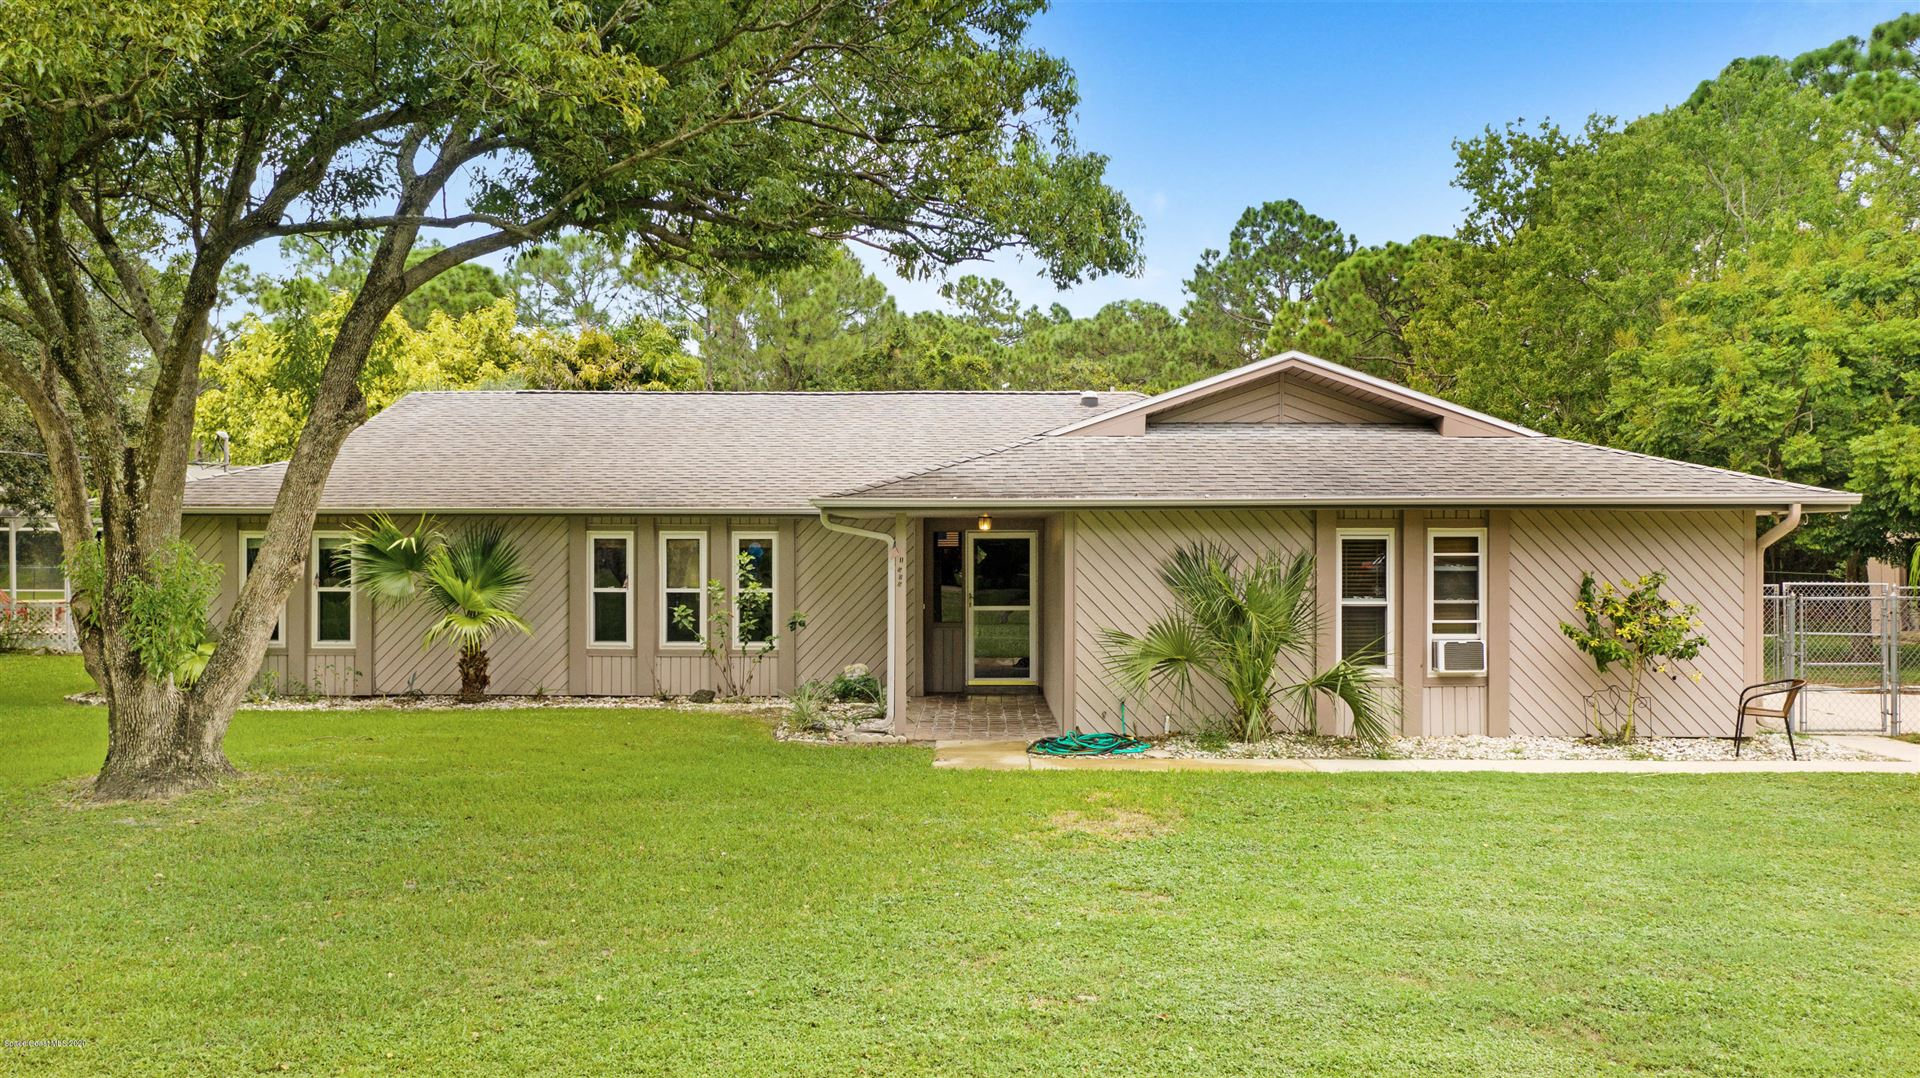 1505 Pinetree Lane, Palm Bay, FL 32907 - #: 885010